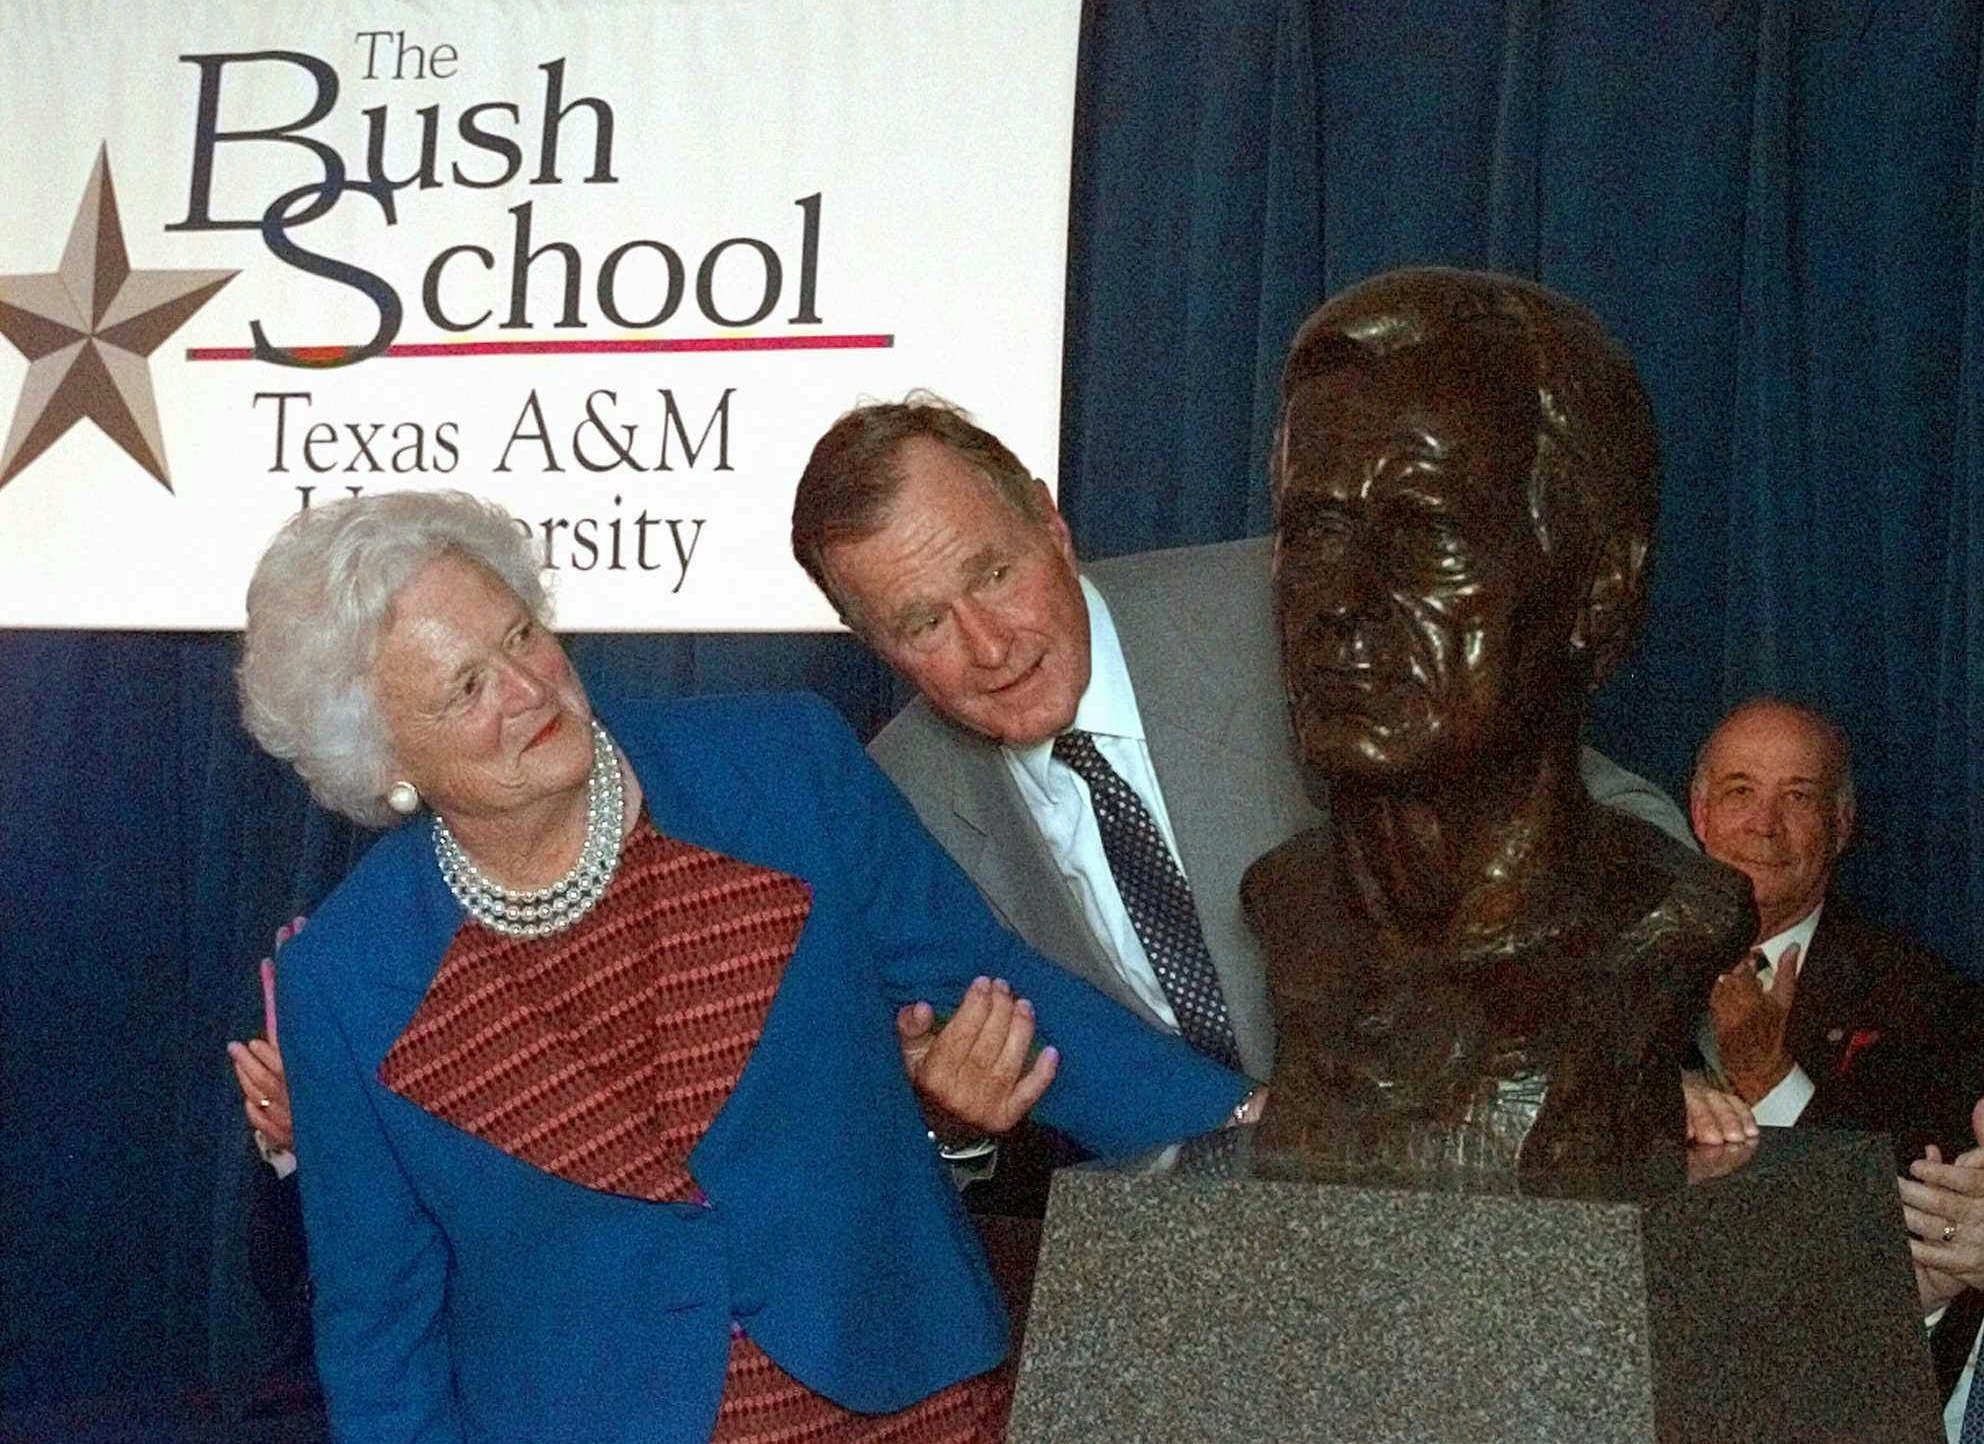 "FILE - In this Sept. 10, 1997 file photo, former President George Bush and his wife Barbara unveil a bust of the president during a ceremony to open The Bush School of Government and Public Service at Texas A&M University in College Station, Texas. Former first couple George and Barbara Bush's relationship is a true love story, described by granddaughter Jenna Bush Hager as ""remarkable."" They met at a Christmas dance. She was 17. He was 18. Two years later they were married. Now 73 years later, with Barbara Bush declining further medical care for health problems, they are the longest-married couple in presidential history. (AP Photo/David J. Phillip)"